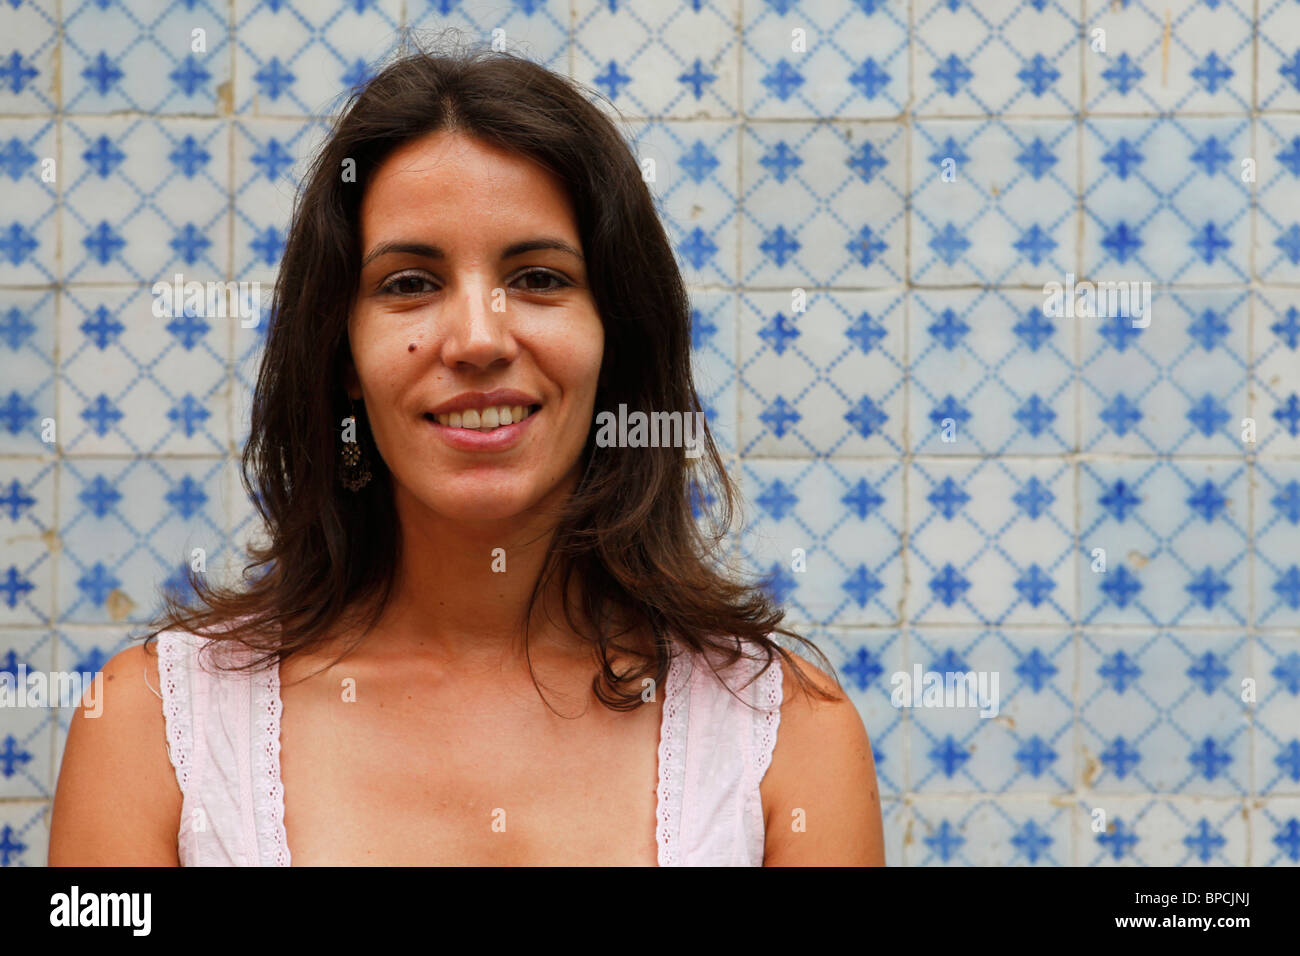 A Portuguese woman stands in front of blue and white Azulejo tiles which are typical of buildings throughout the - Stock Image